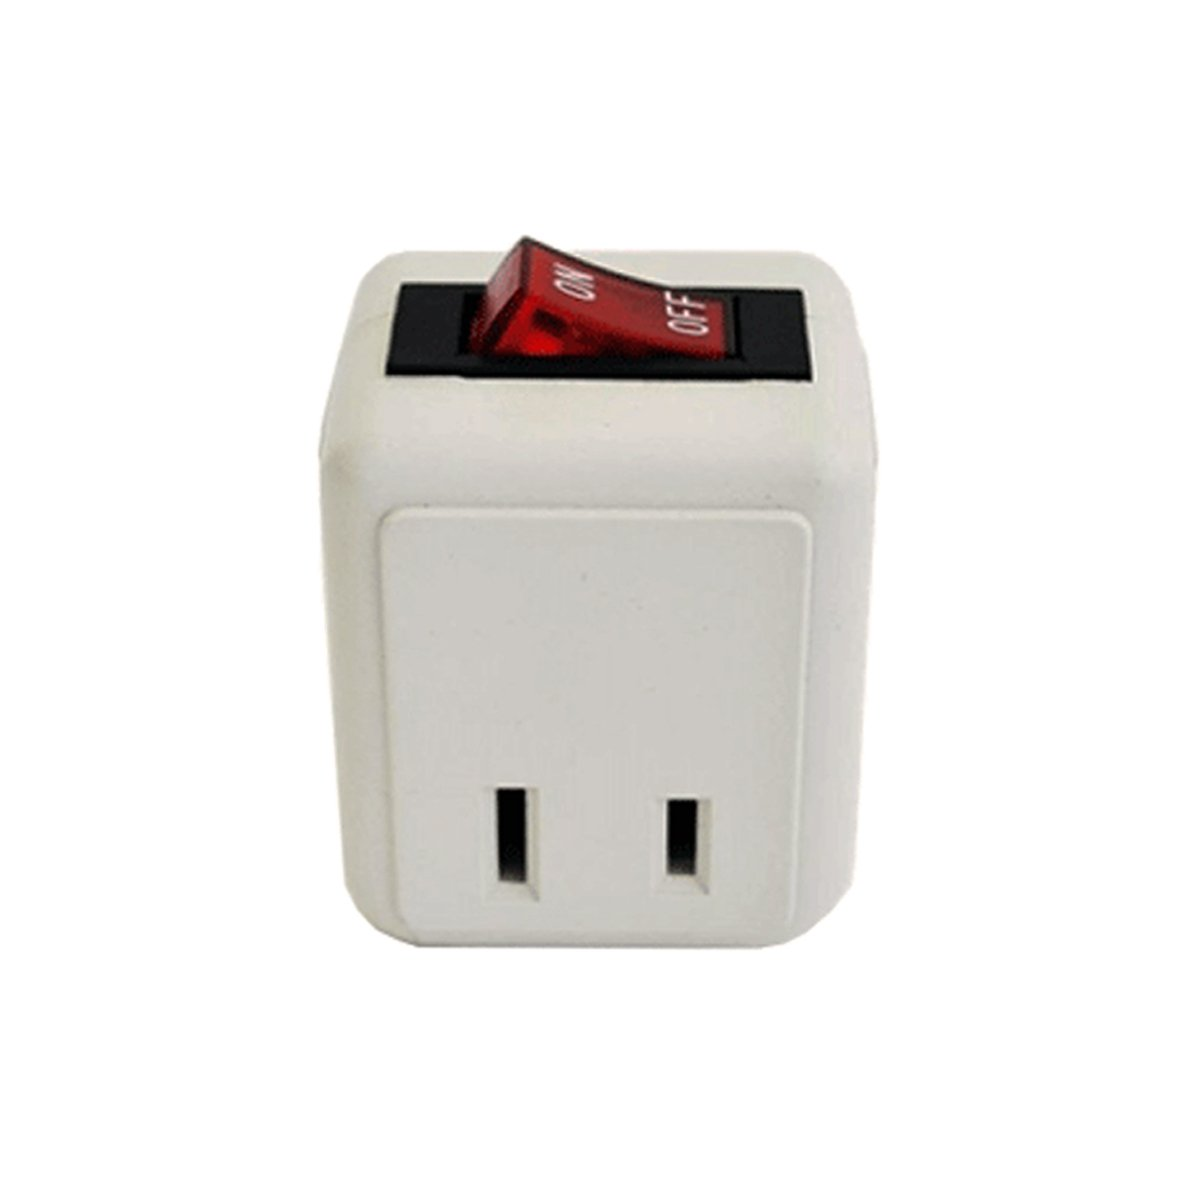 Amazon.com: Uninex Wall Tap Outlet W/Turn ON/OFF Switch Power ...